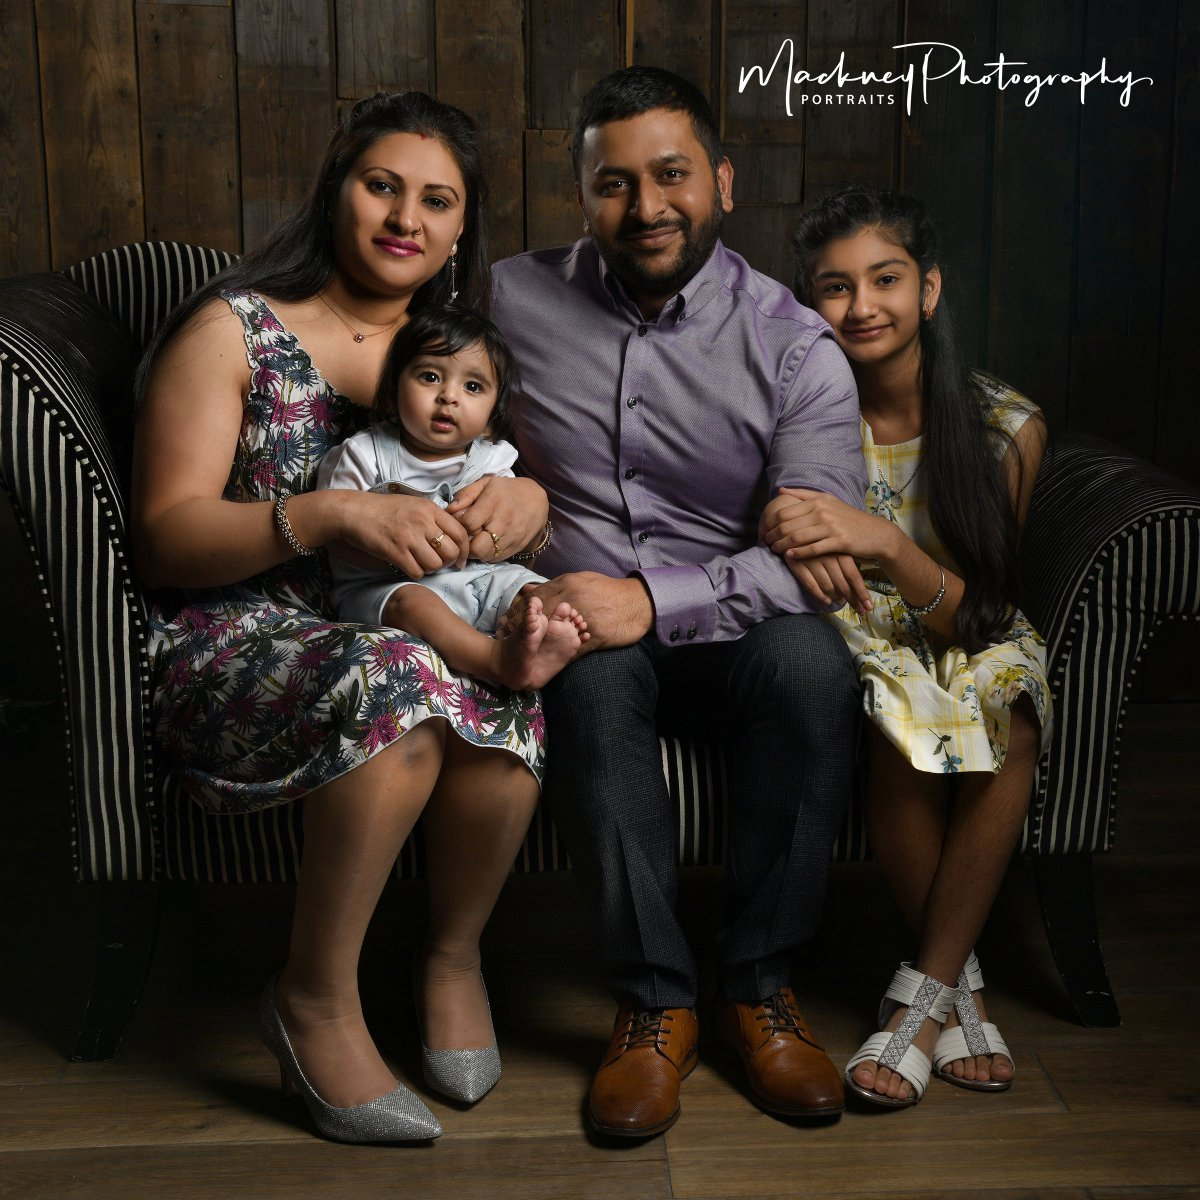 What a gorgeous portrait of the Saini Family. Mum and Dad look soooooo proud of their babies Ashmita and Krishiv! #FamilyPortrait #Studioportrait #Generations #family #love #portraits #photography #mackney #derbypic.twitter.com/I9WVW57z0w